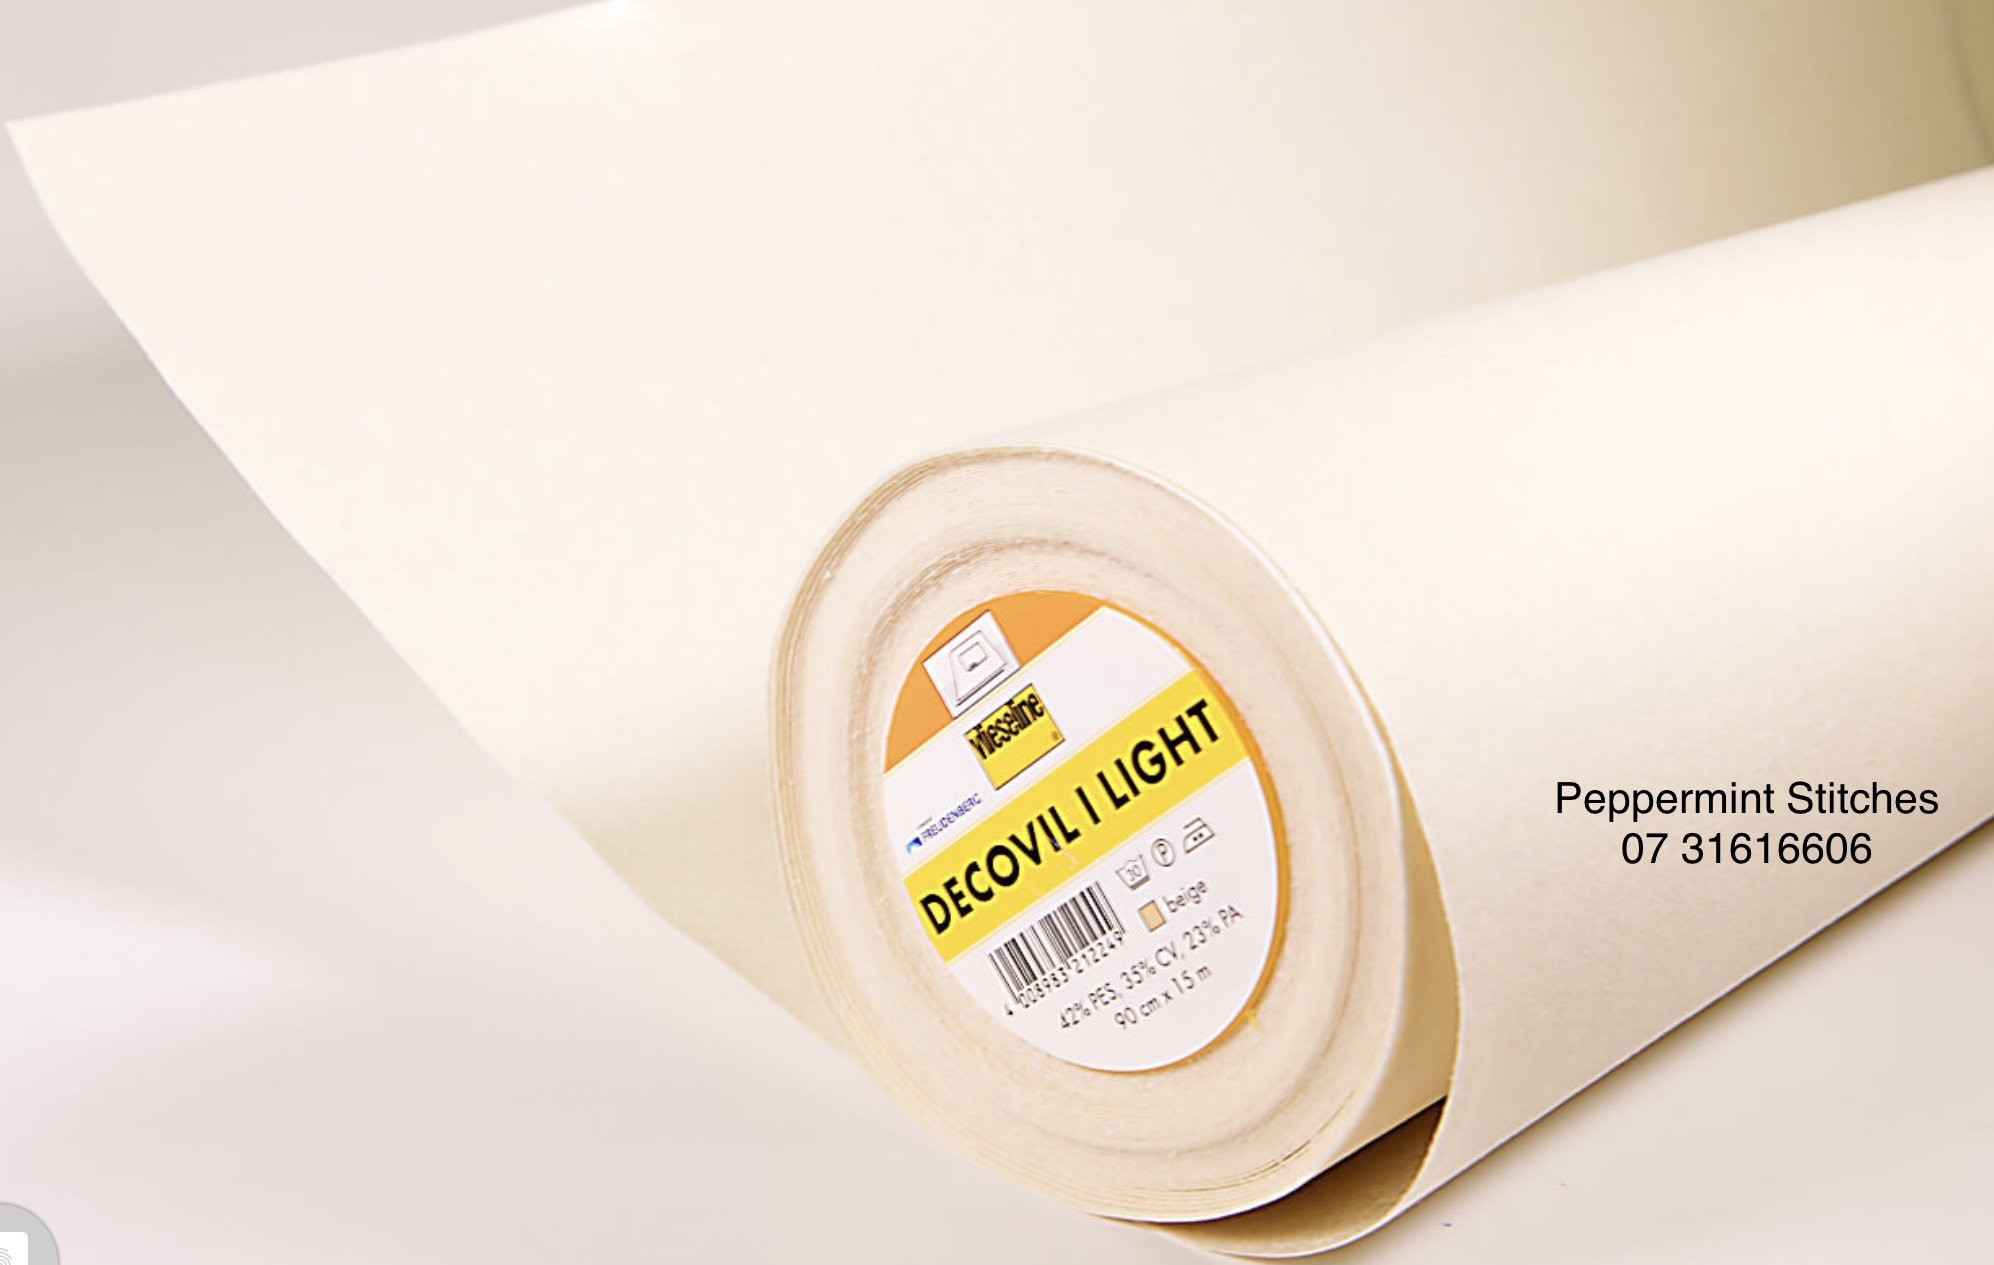 Decoville Light - Lightweight Fusible interlining used in bags, crafting, book covers, many other uses